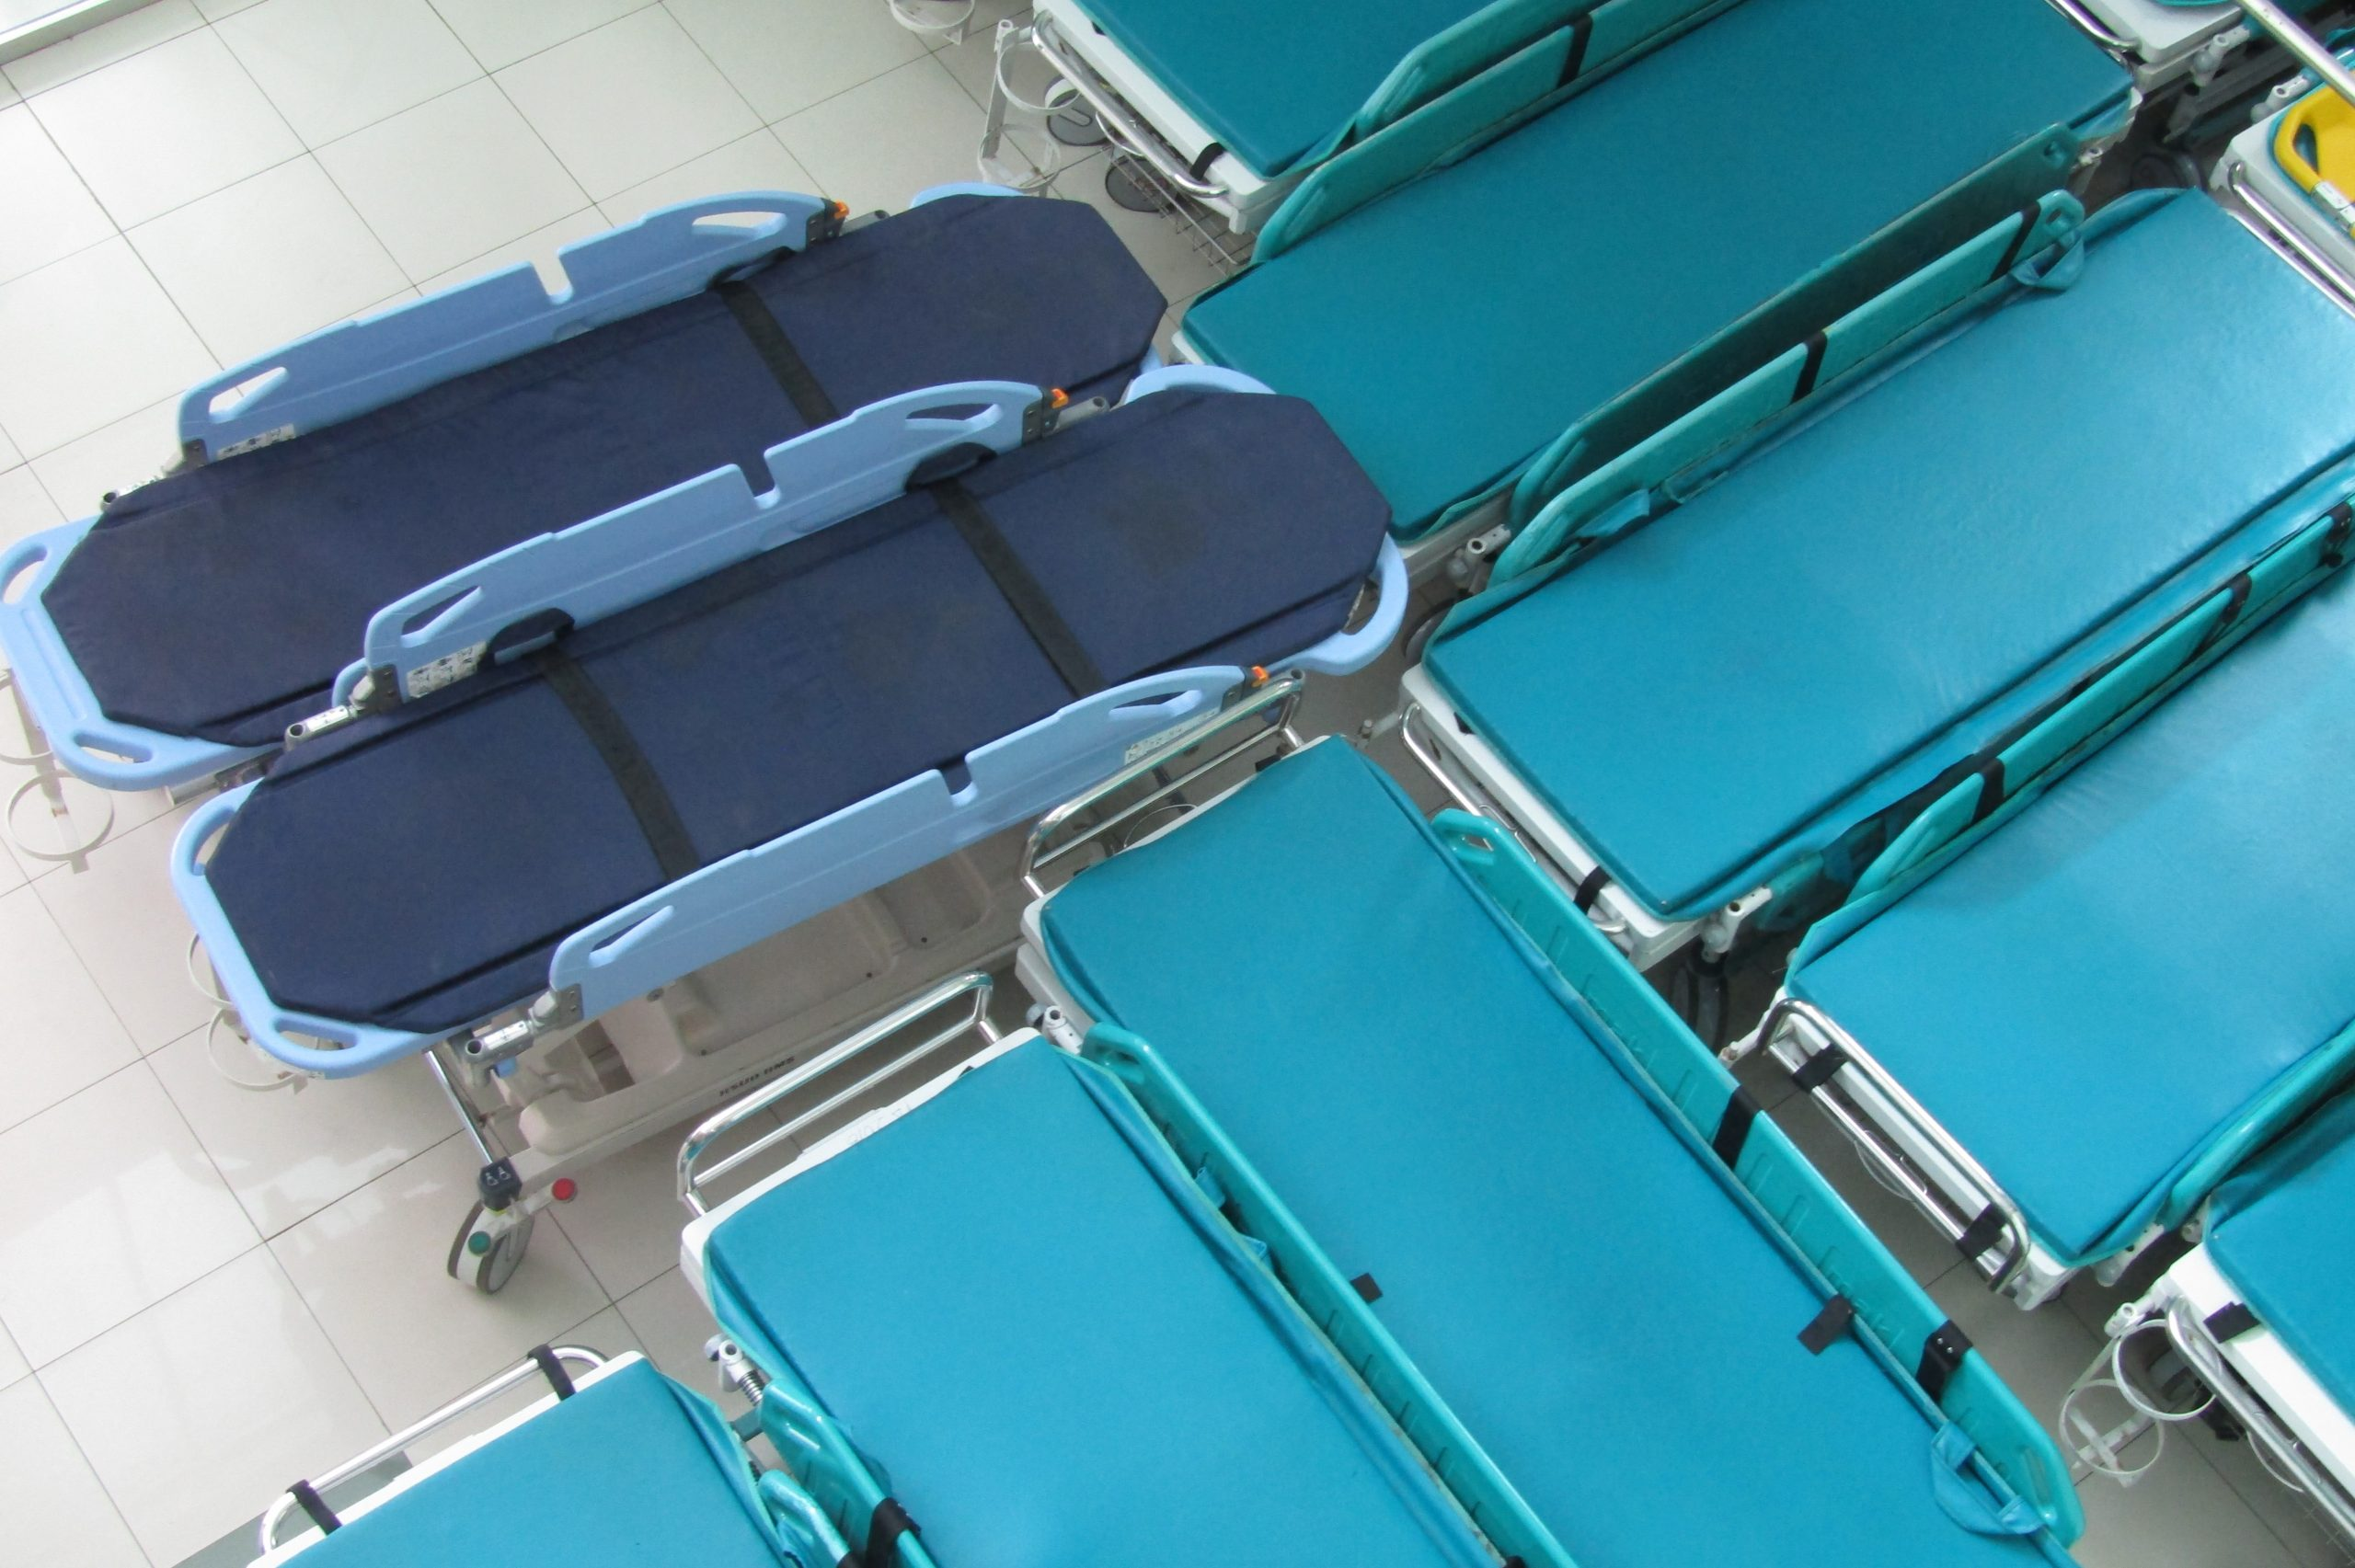 blue ambulance stretcher beds are grouped together in a hospital room.